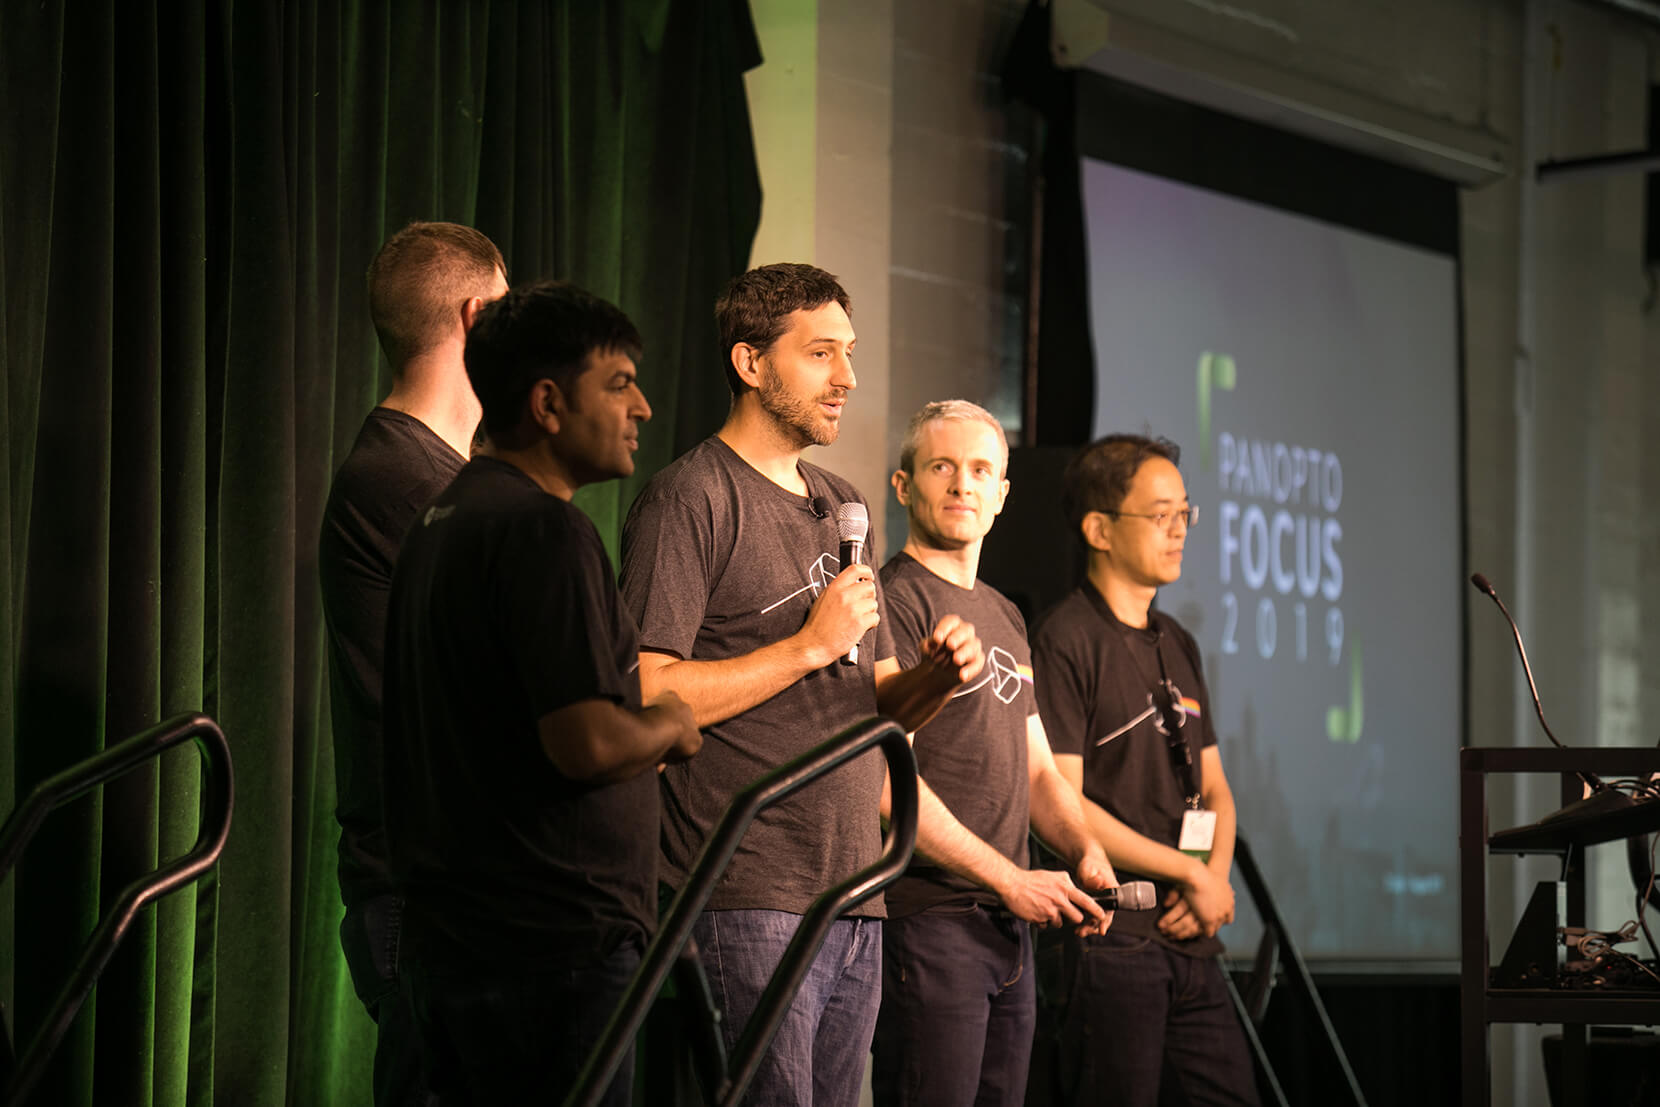 Panopto Focus 2019 - Engineering Panel